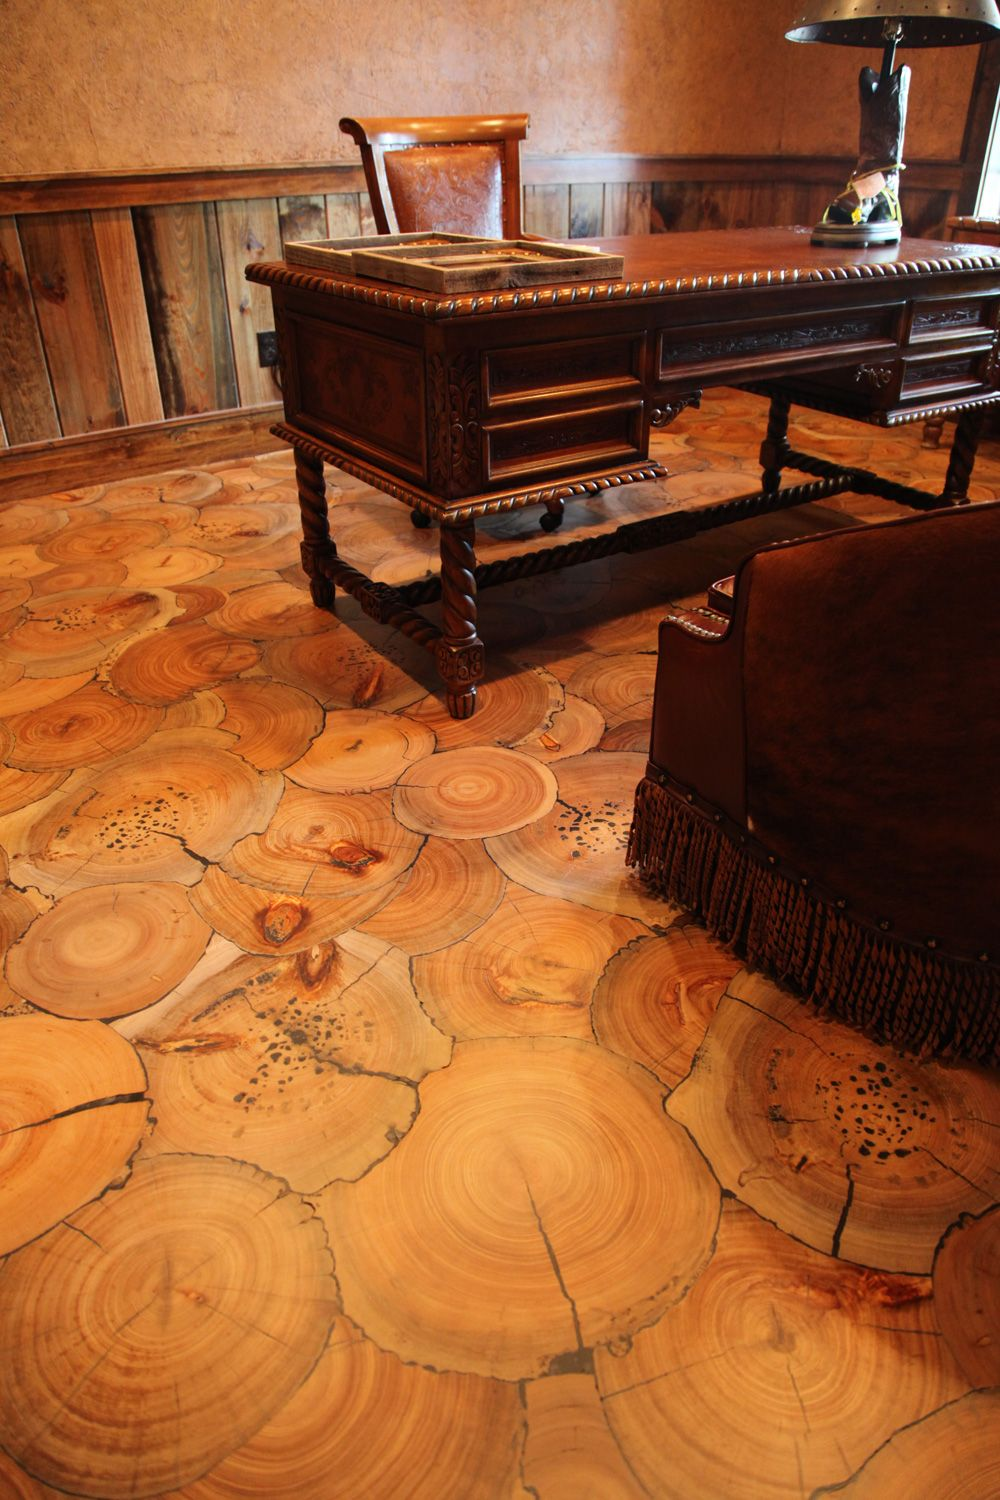 Wood Floor Of The Year 2014: Taking Center Stage   Hardwood Floors Magazineu2026  Hardwood Flooring Design Ideas